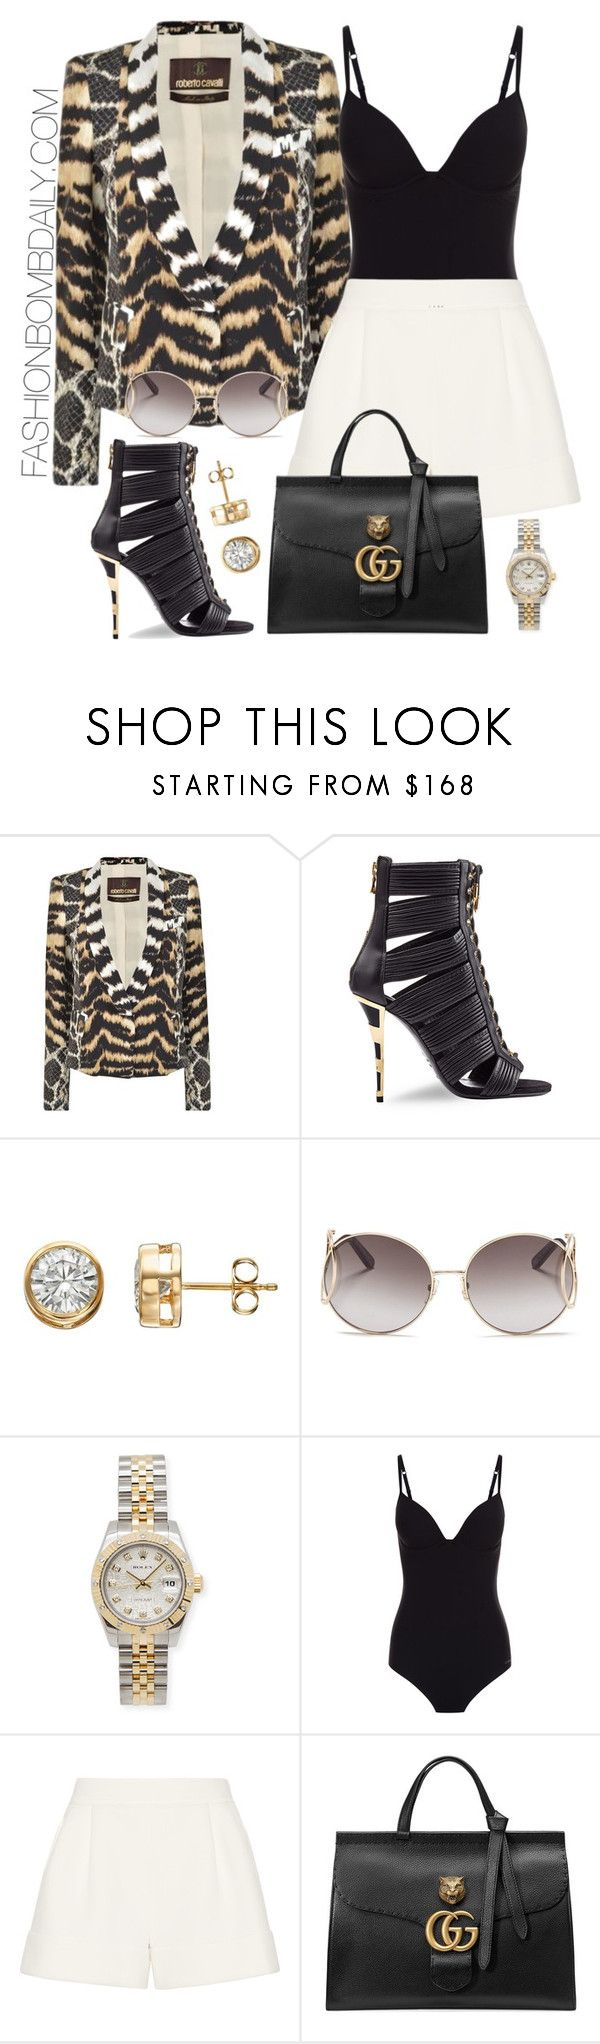 """""""Untitled #1939"""" by dnicoleg ❤ liked on Polyvore featuring Roberto Cavalli, Balmain, Chloé, Rolex, 3.1 Phillip Lim and Gucci"""